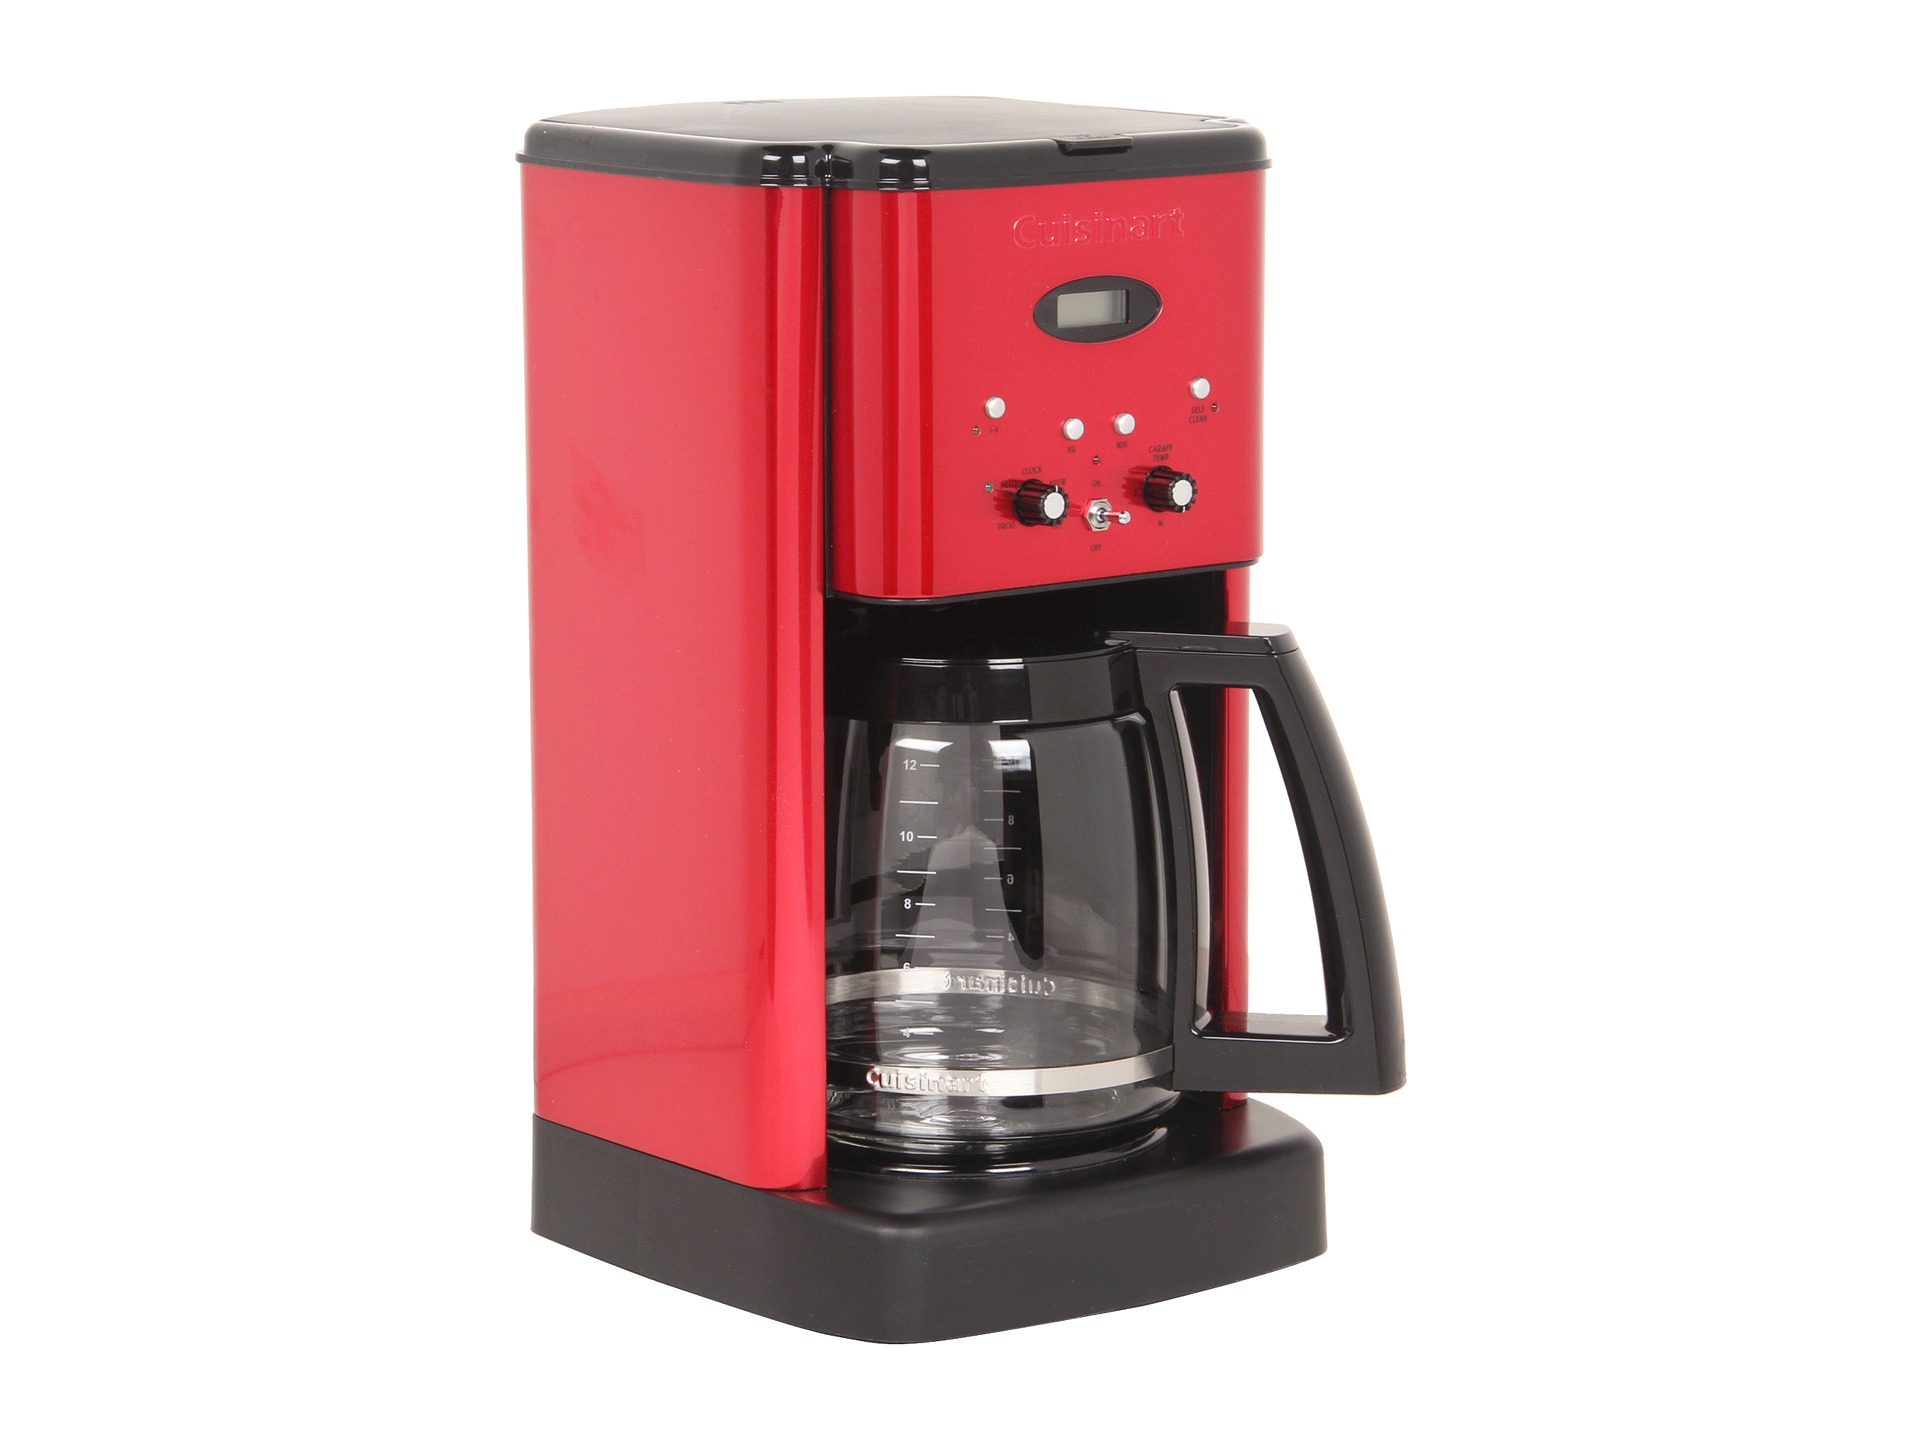 Cuisinart Coffee Maker Dc1200 Reviews : Cuisinart Dcc 1200 Brew Central 12 Cup Programmable Coffee Maker Shipped Free at Zappos